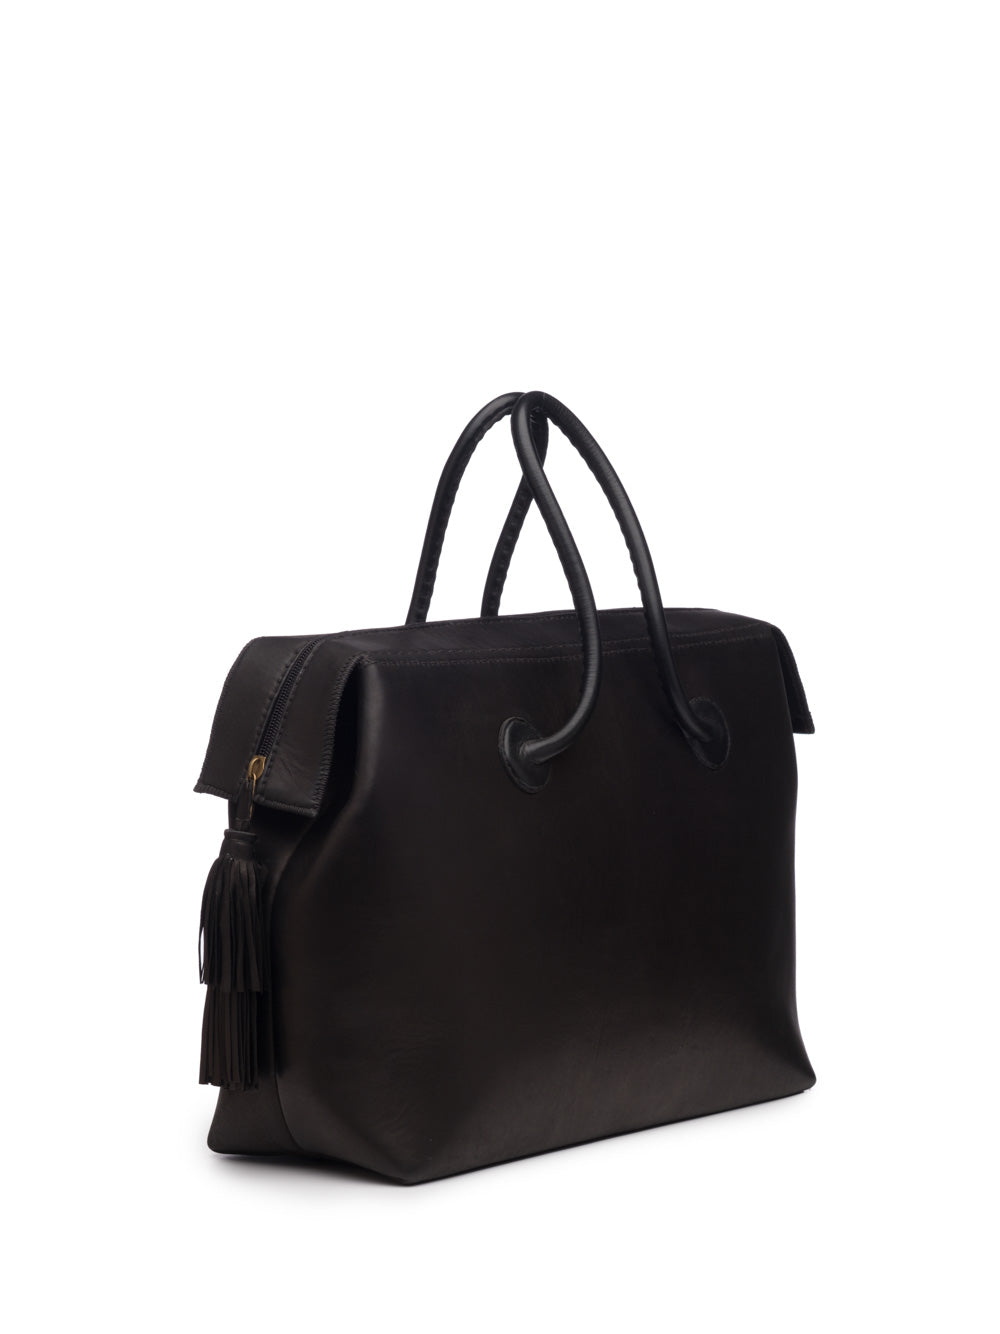 Classic Black Weekend Bag